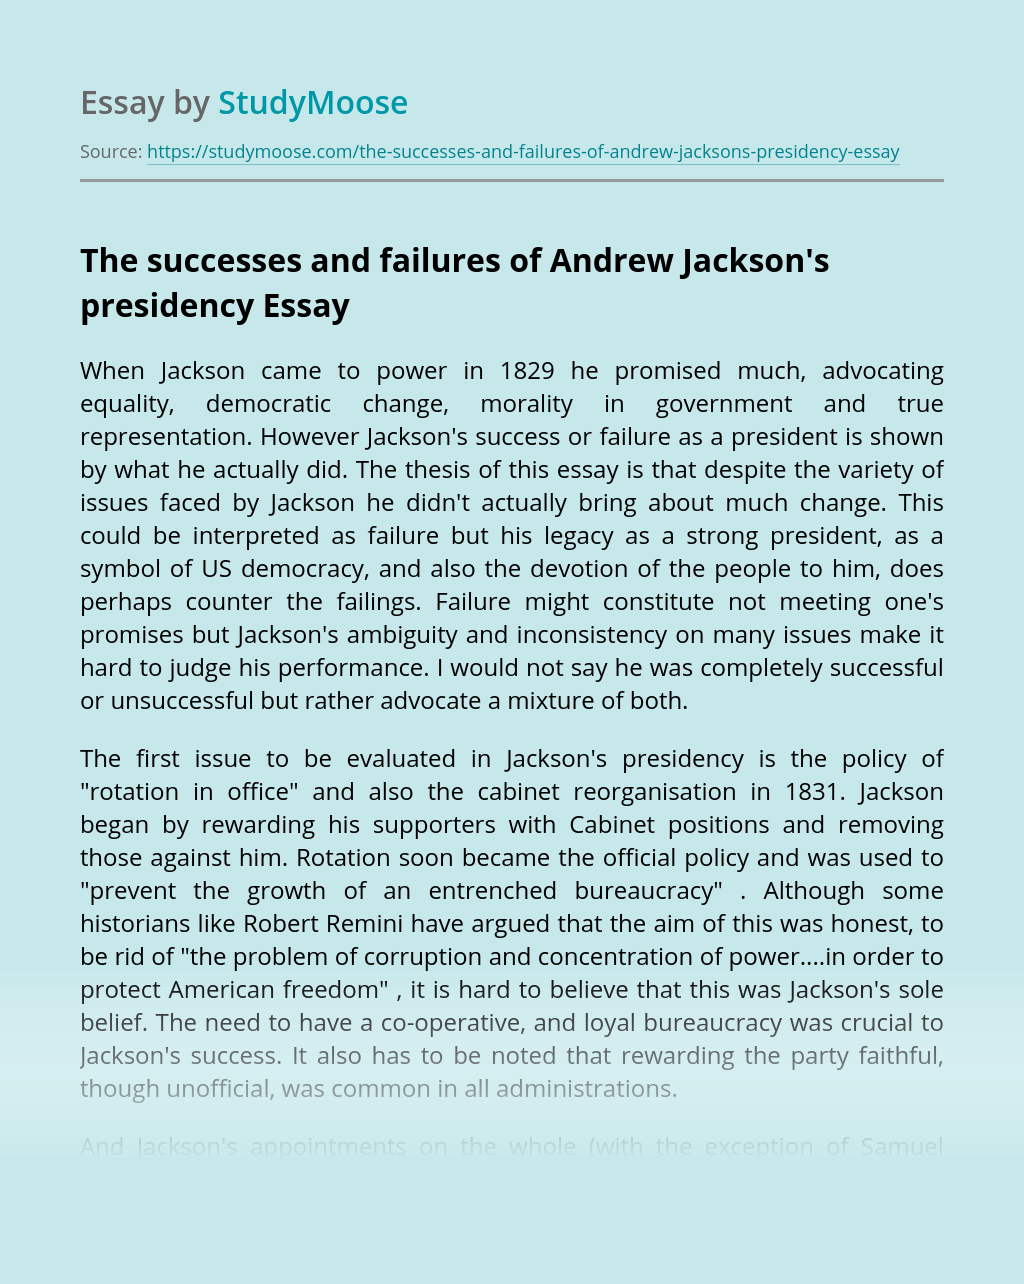 The successes and failures of Andrew Jackson's presidency